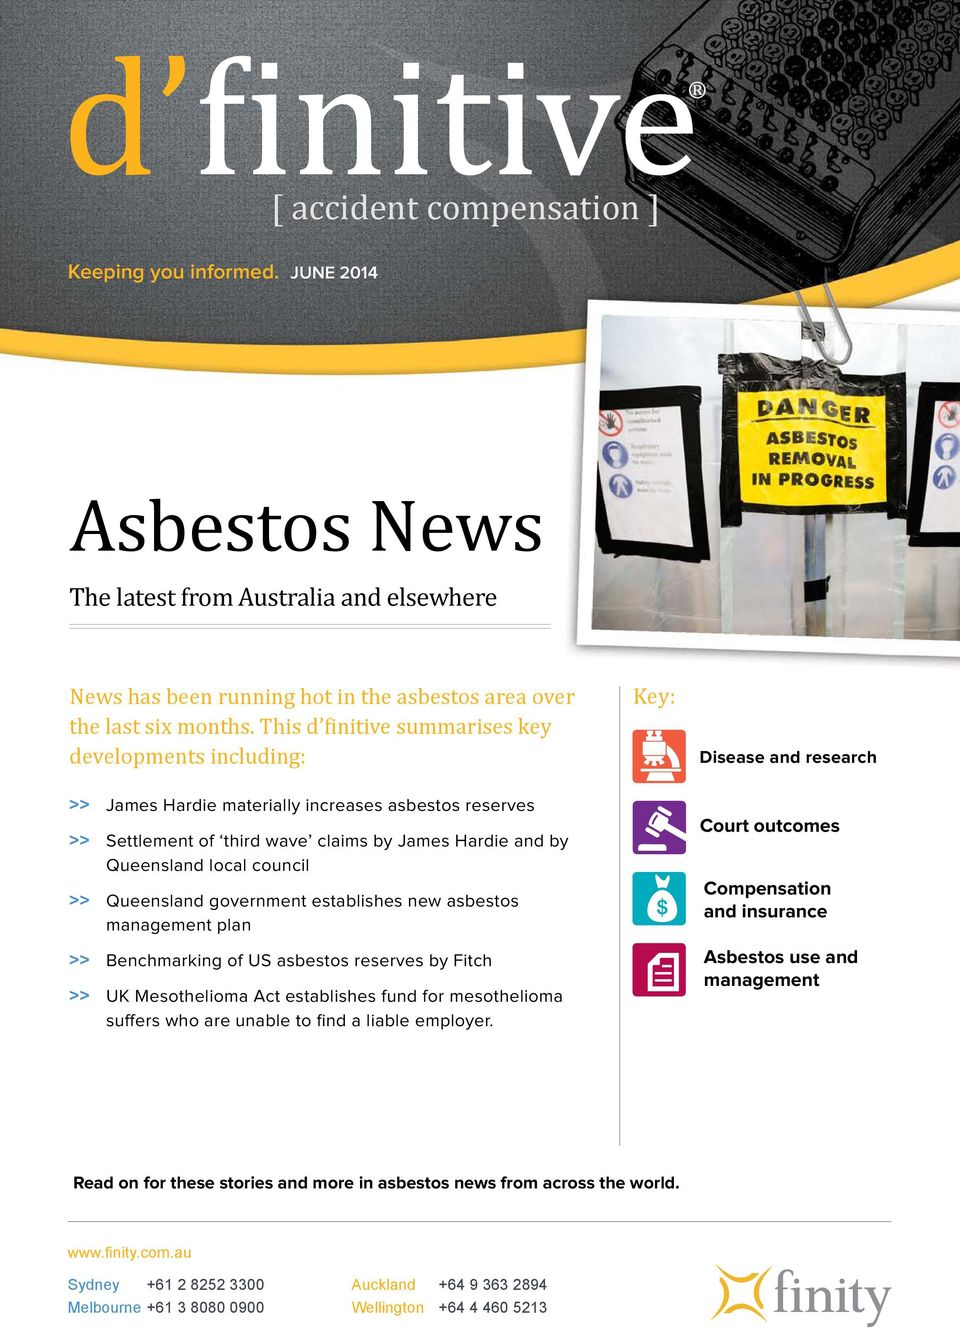 Queensland government establishes new asbestos management plan >> Benchmarking of US asbestos reserves by Fitch >> UK Mesothelioma Act establishes fund for mesothelioma suffers who are unable to find